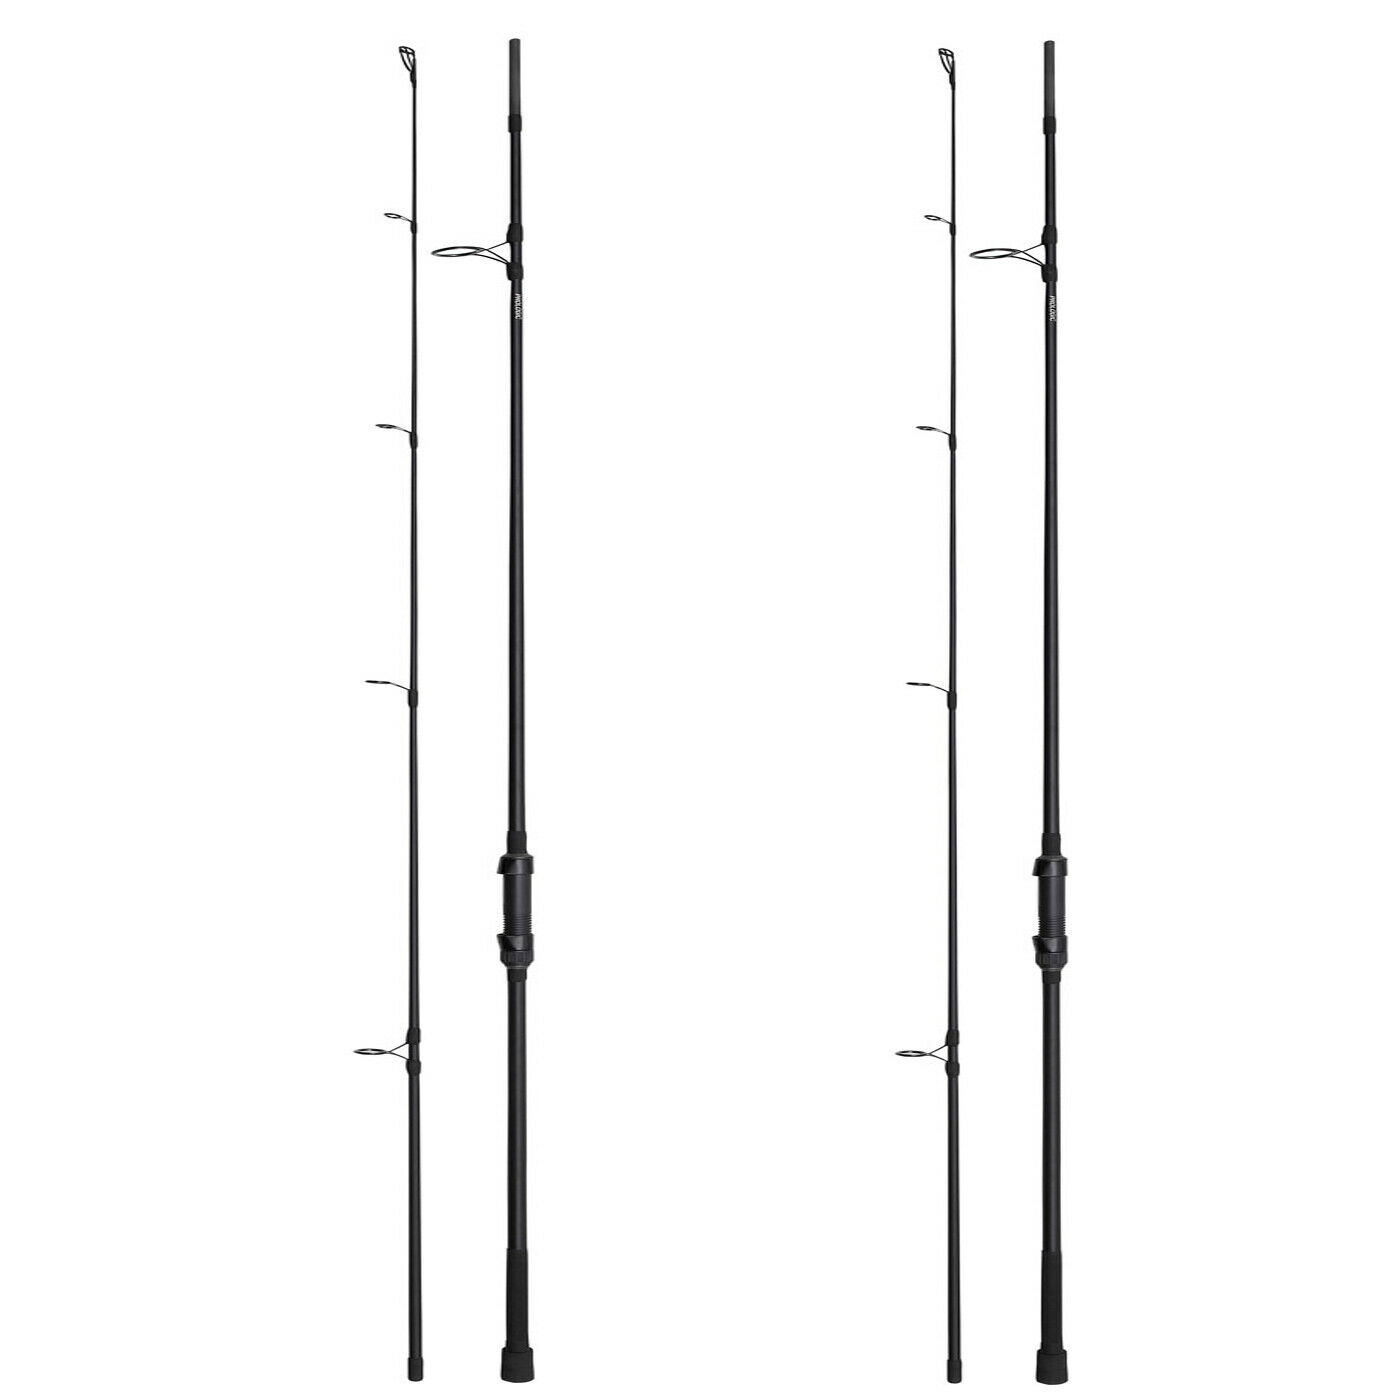 Prologic Custom Black 12ft 3lb 50mm Carp Rod -Set of 2-